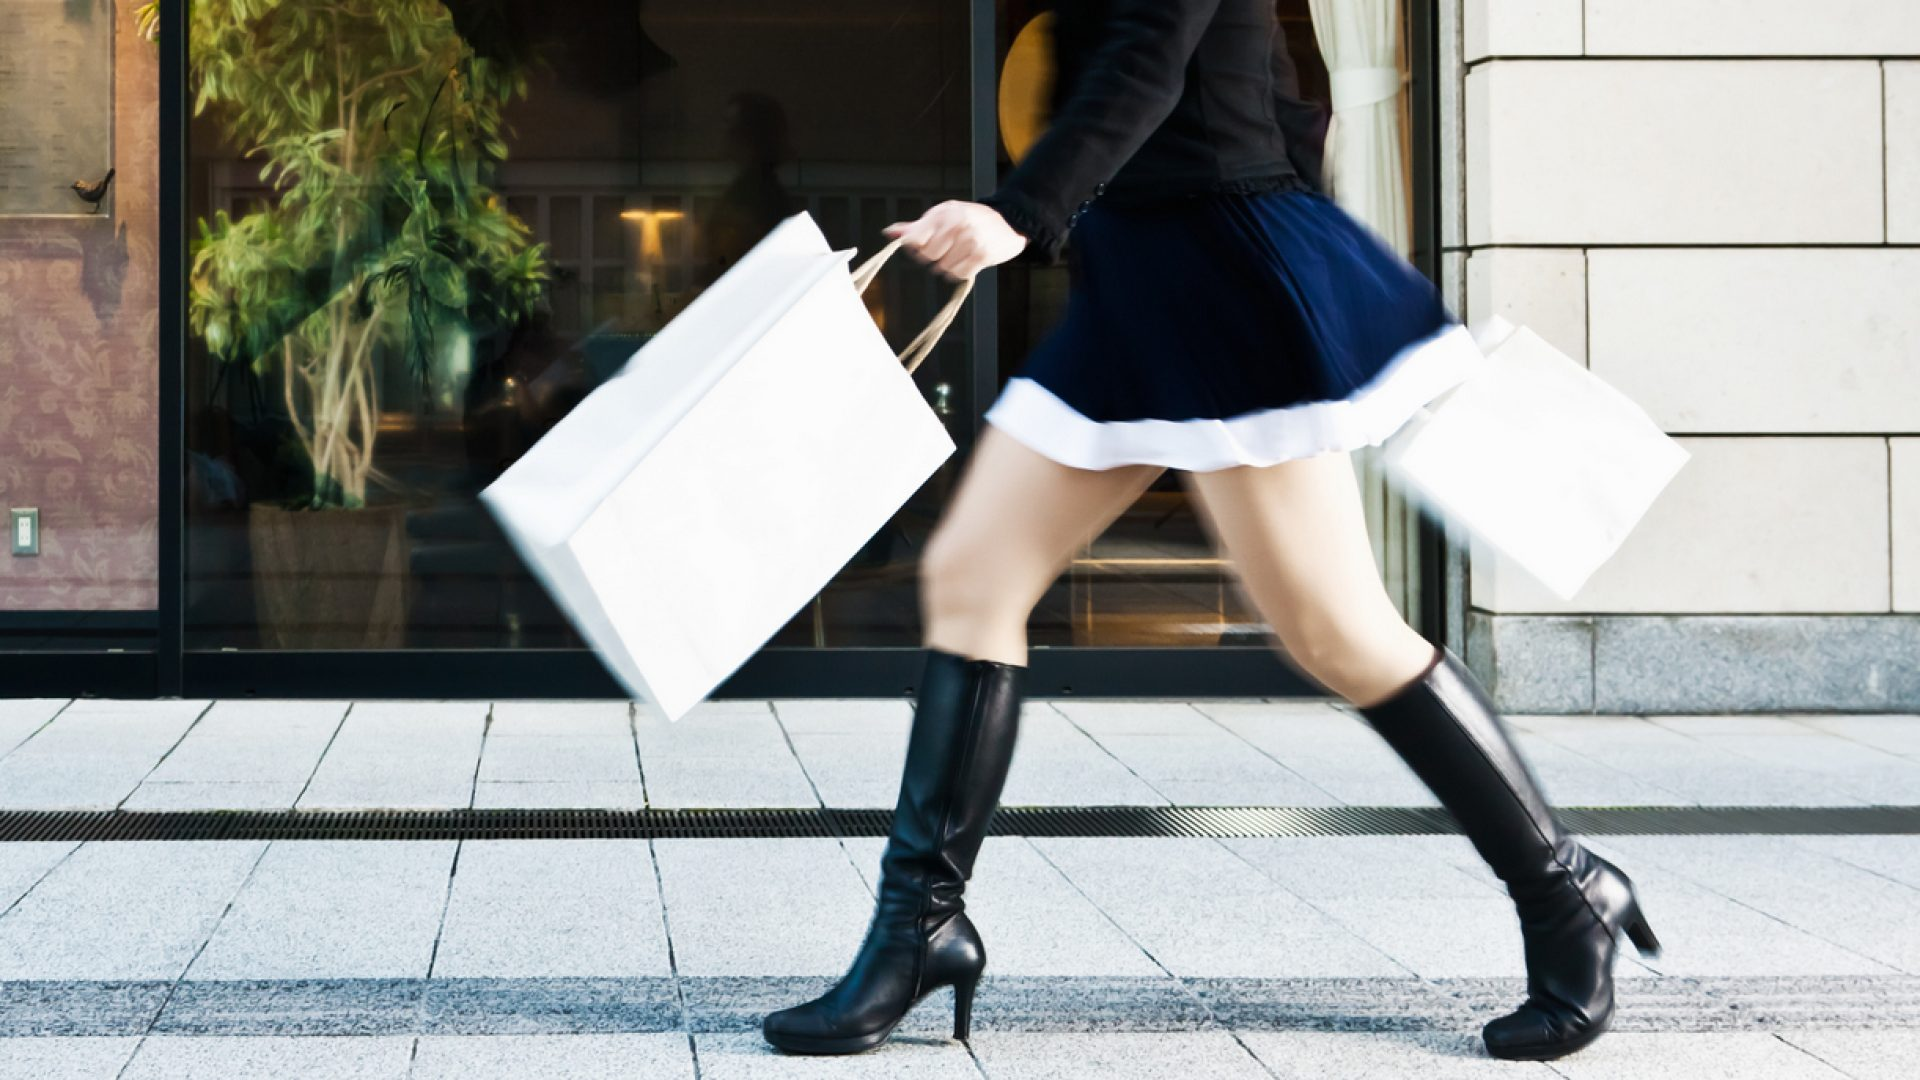 Woman strolling down the street wearing boots and swinging shopping bags.